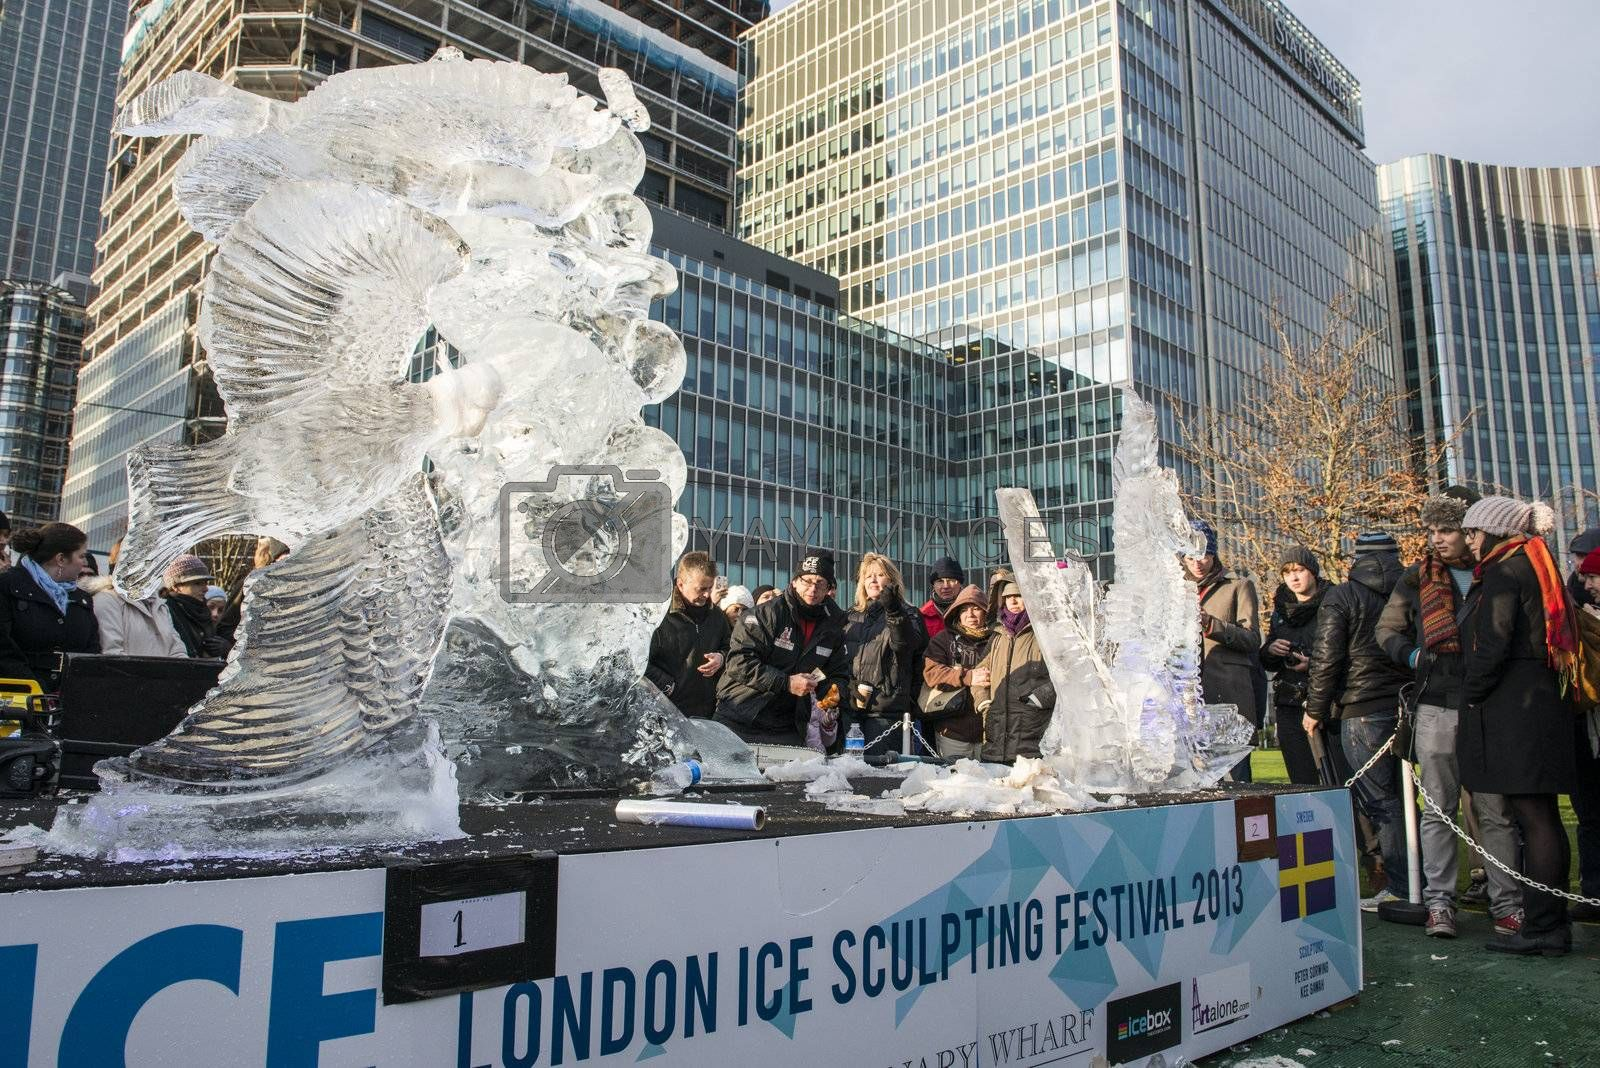 LONDON, UK - JANUARY 13: The Swedish team's freestyle modality sculptures at the London Ice Sculpture Festival, in Canary Wharf. January 13, 2013 in London.